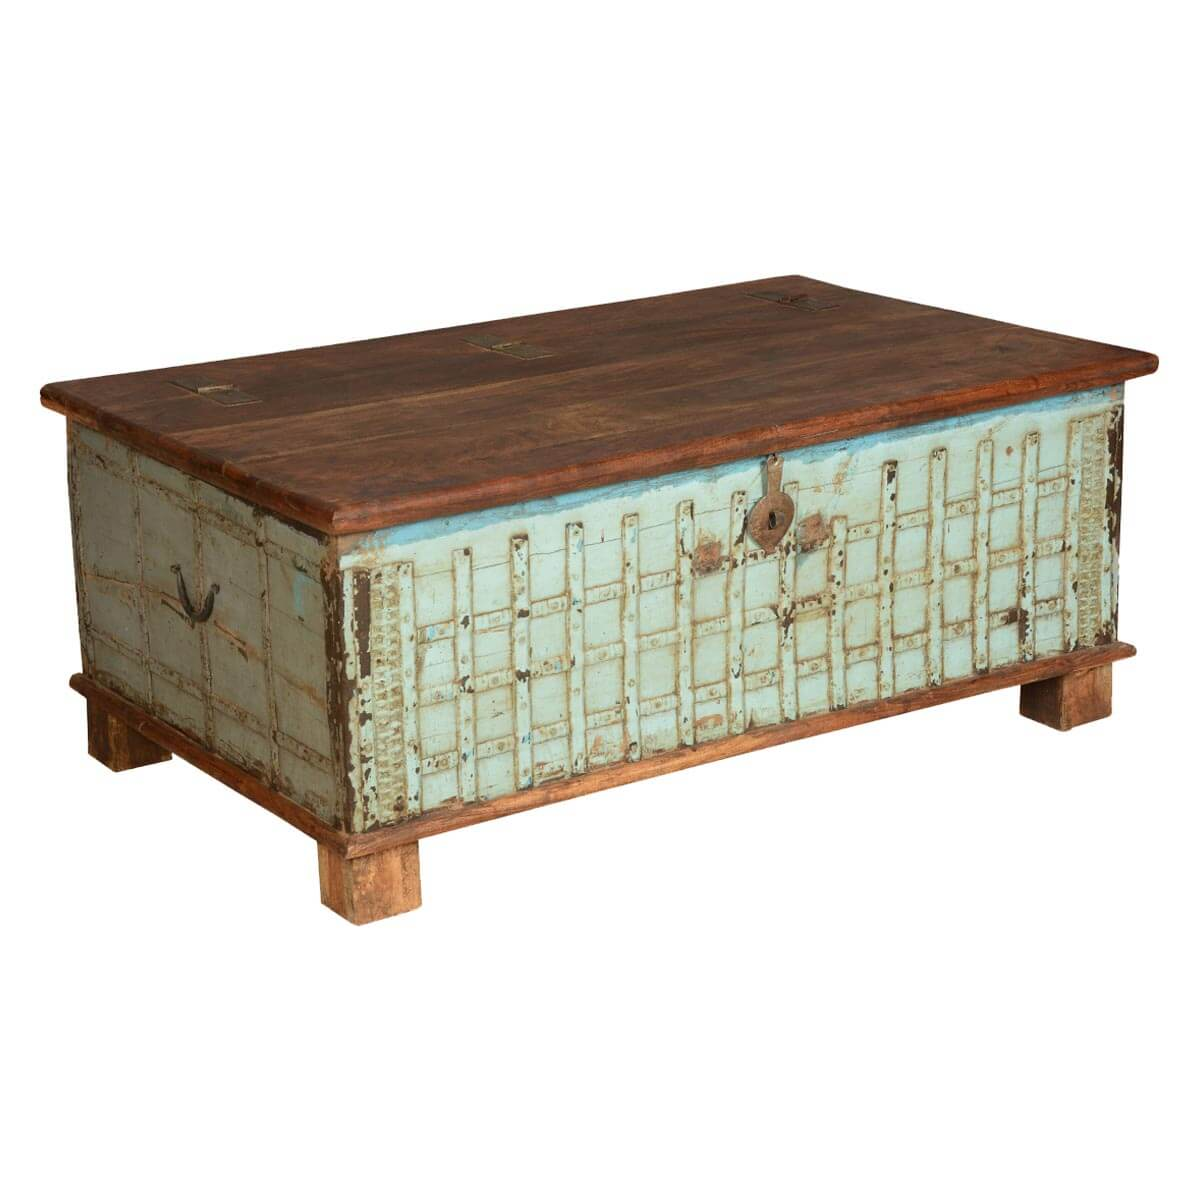 Gothic Lattice Reclaimed Wood Standing Coffee Table Chest